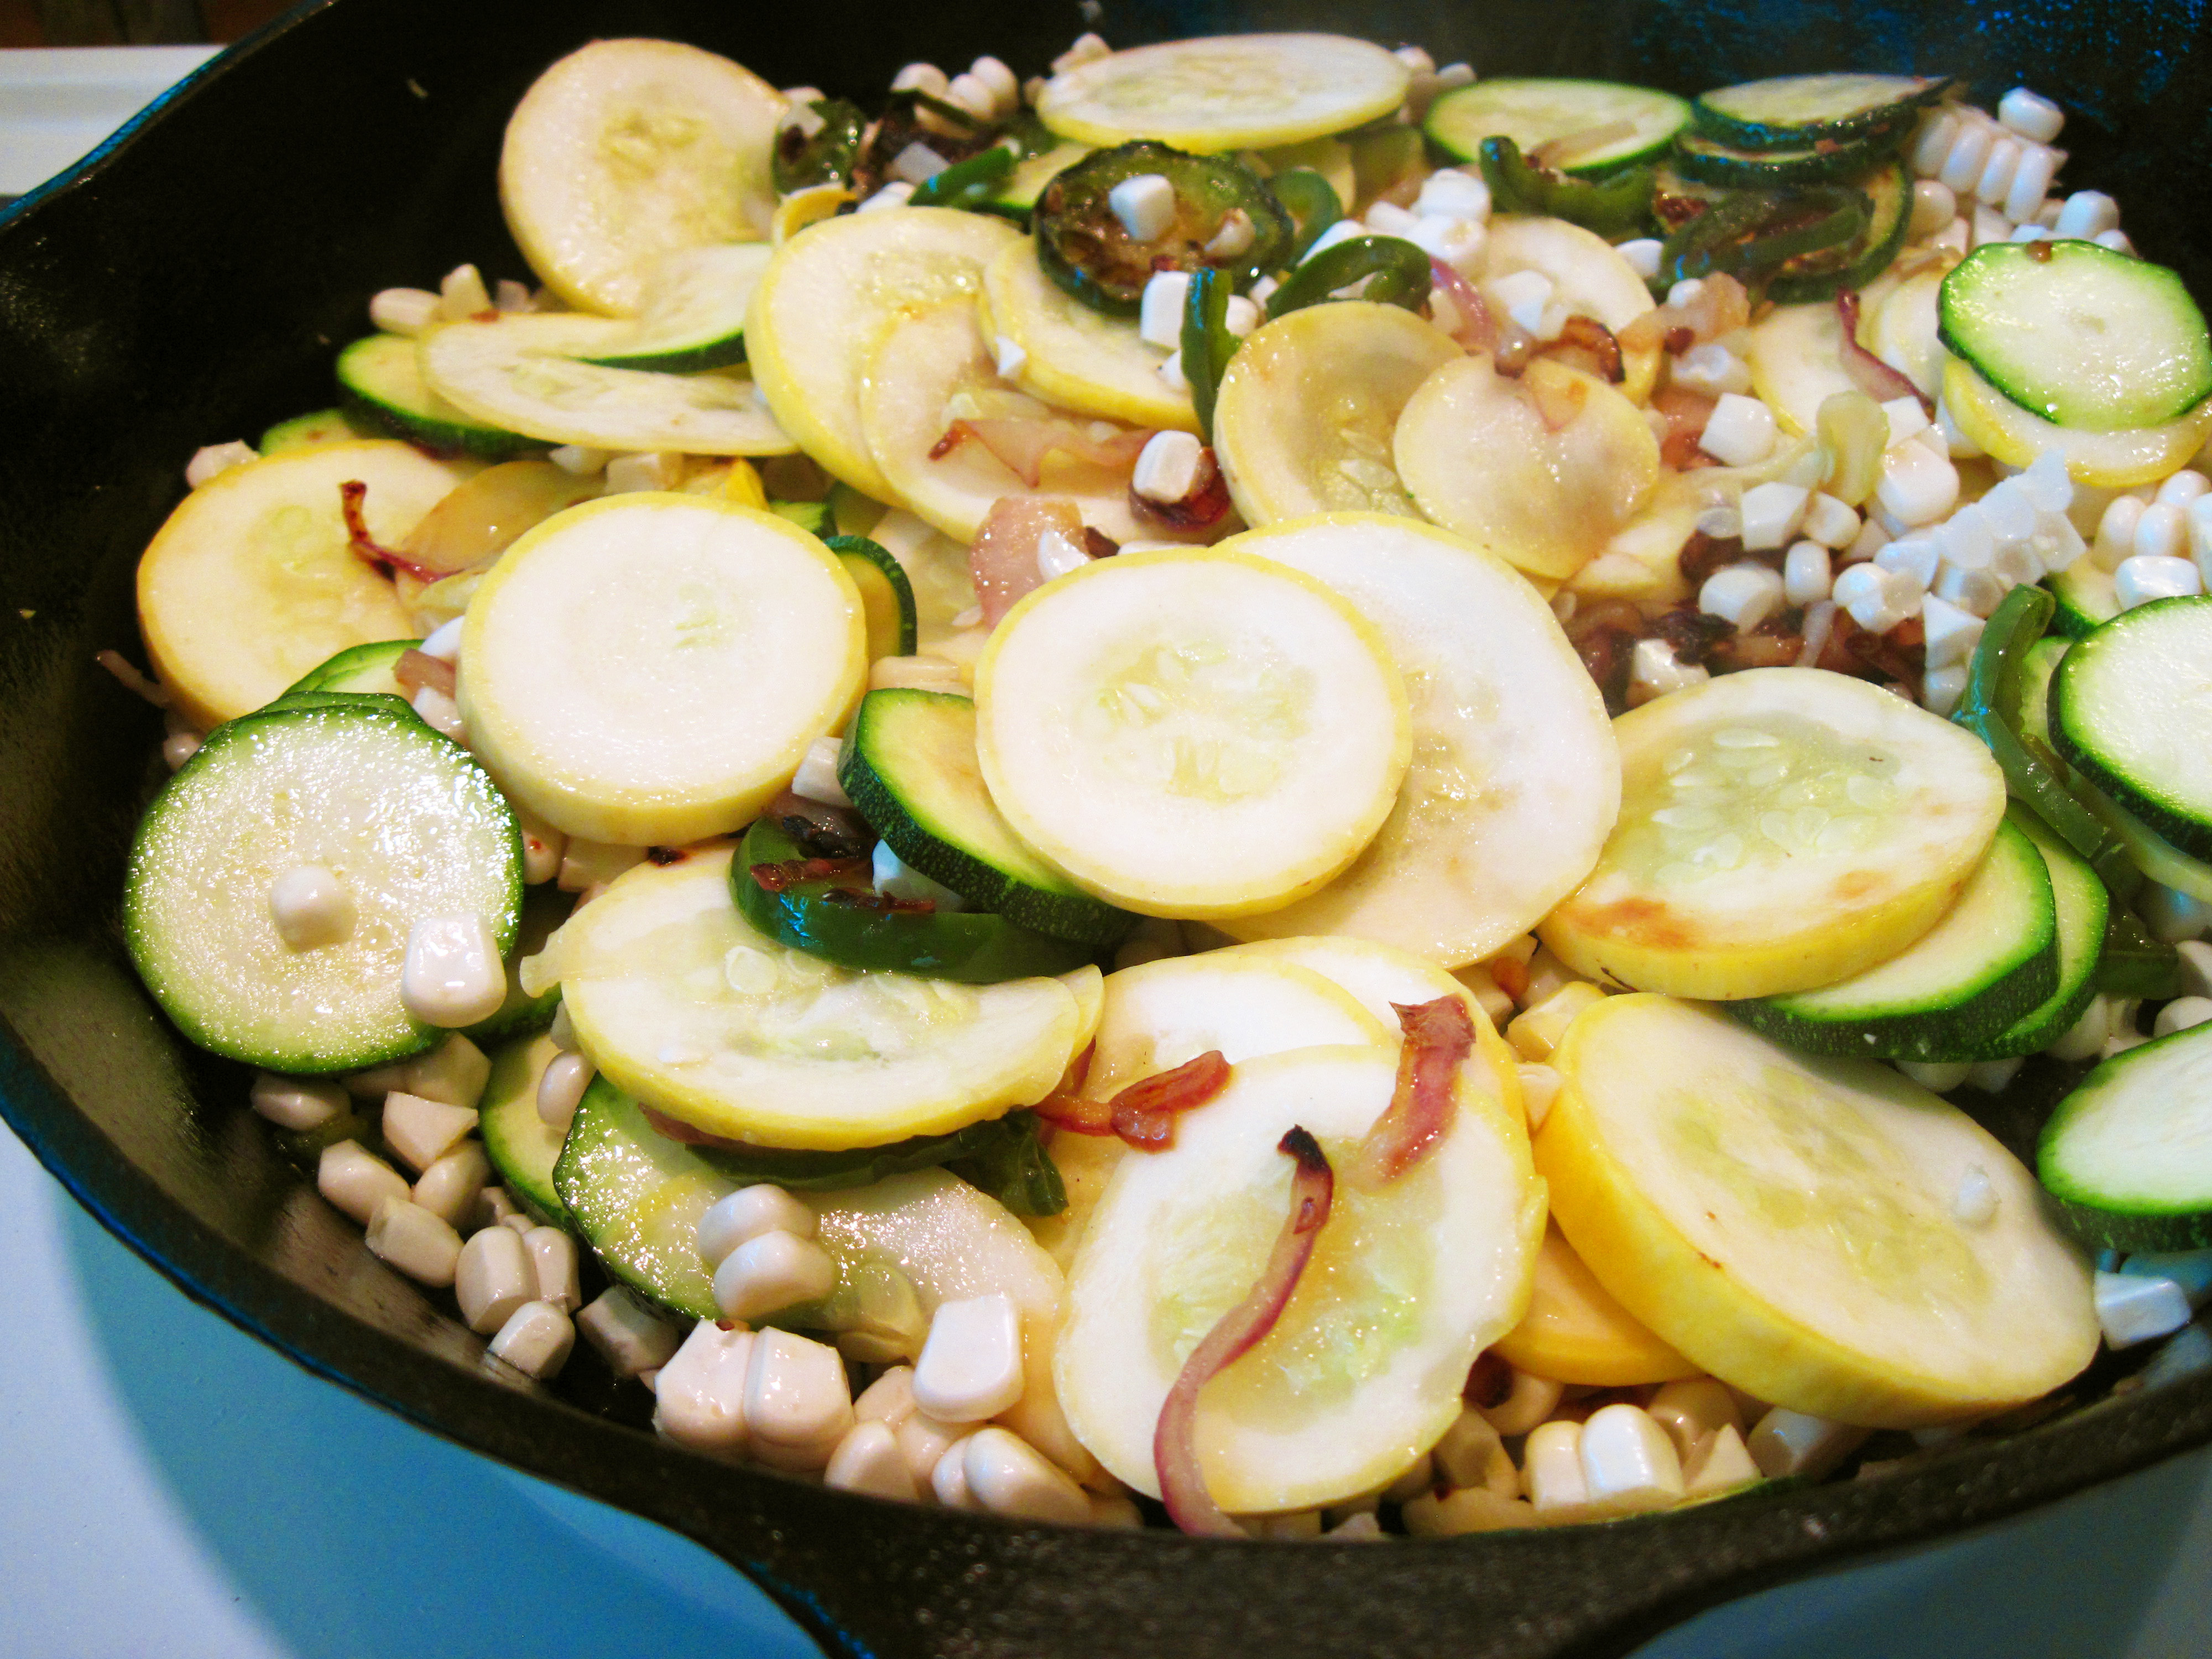 Spicy Zucchini Frittata   In the kitchen with Kath